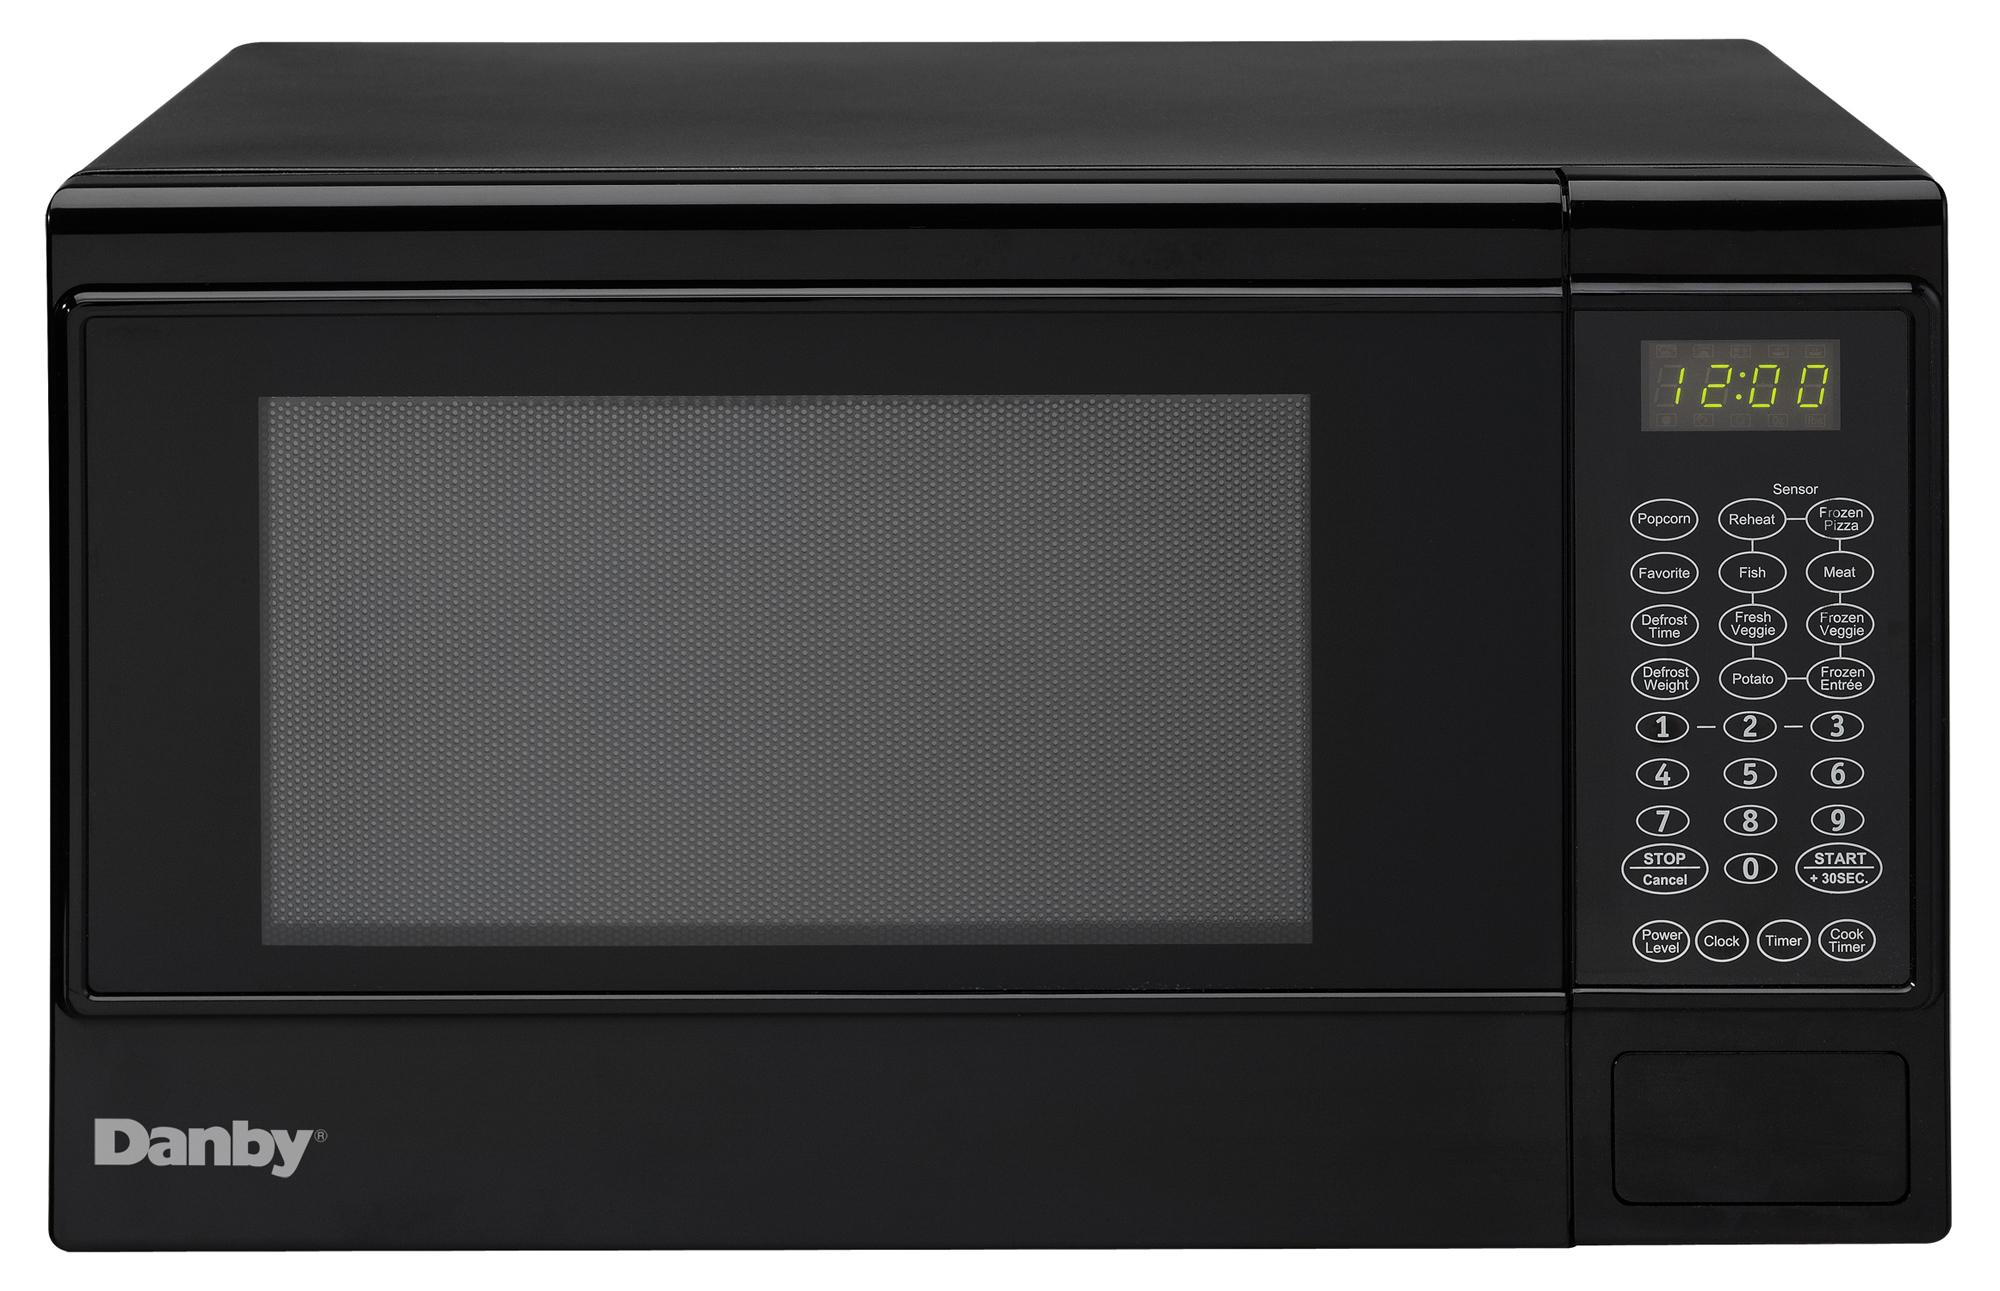 Microwaves 1.4 Cu. Ft. Countertop Microwave by Danby at Furniture and ApplianceMart